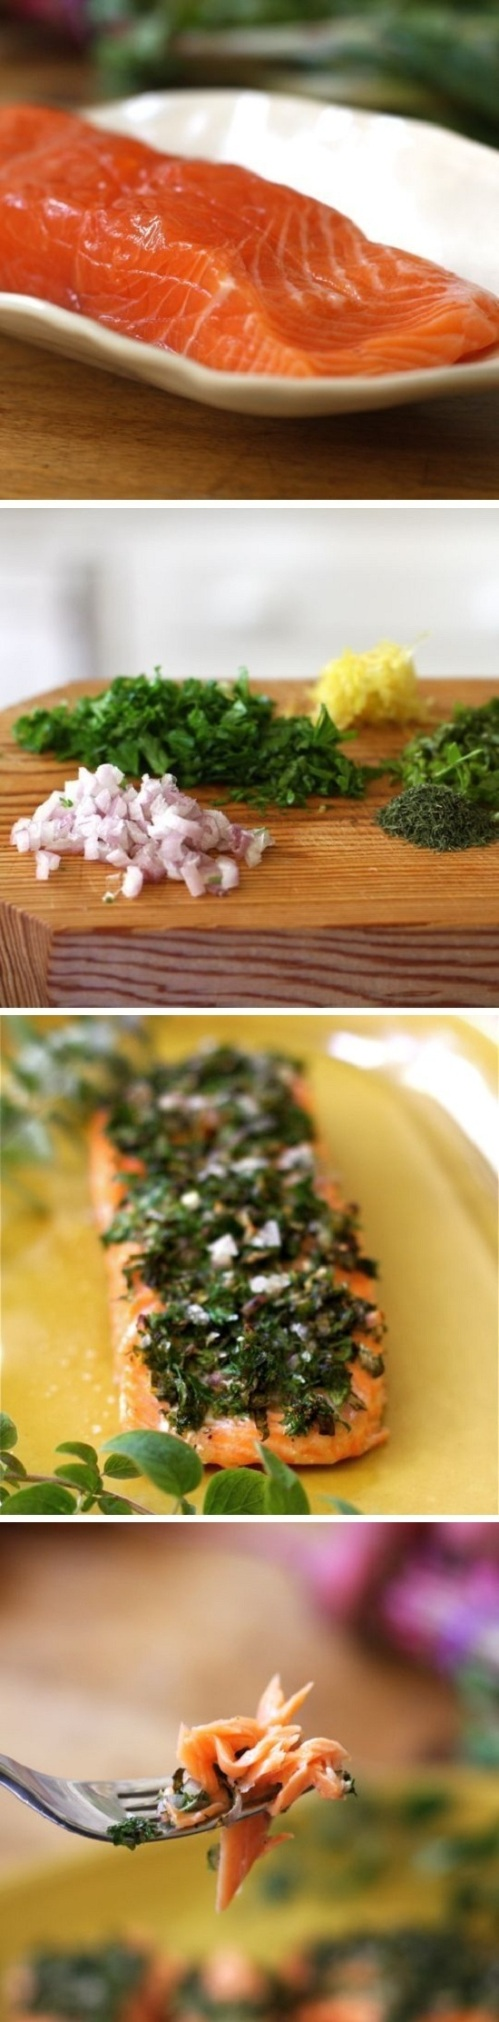 Herb Oven Baked Salmon Recipe By Cupcakepedia, salmon, oven baked salmon, herb, fresh seafood